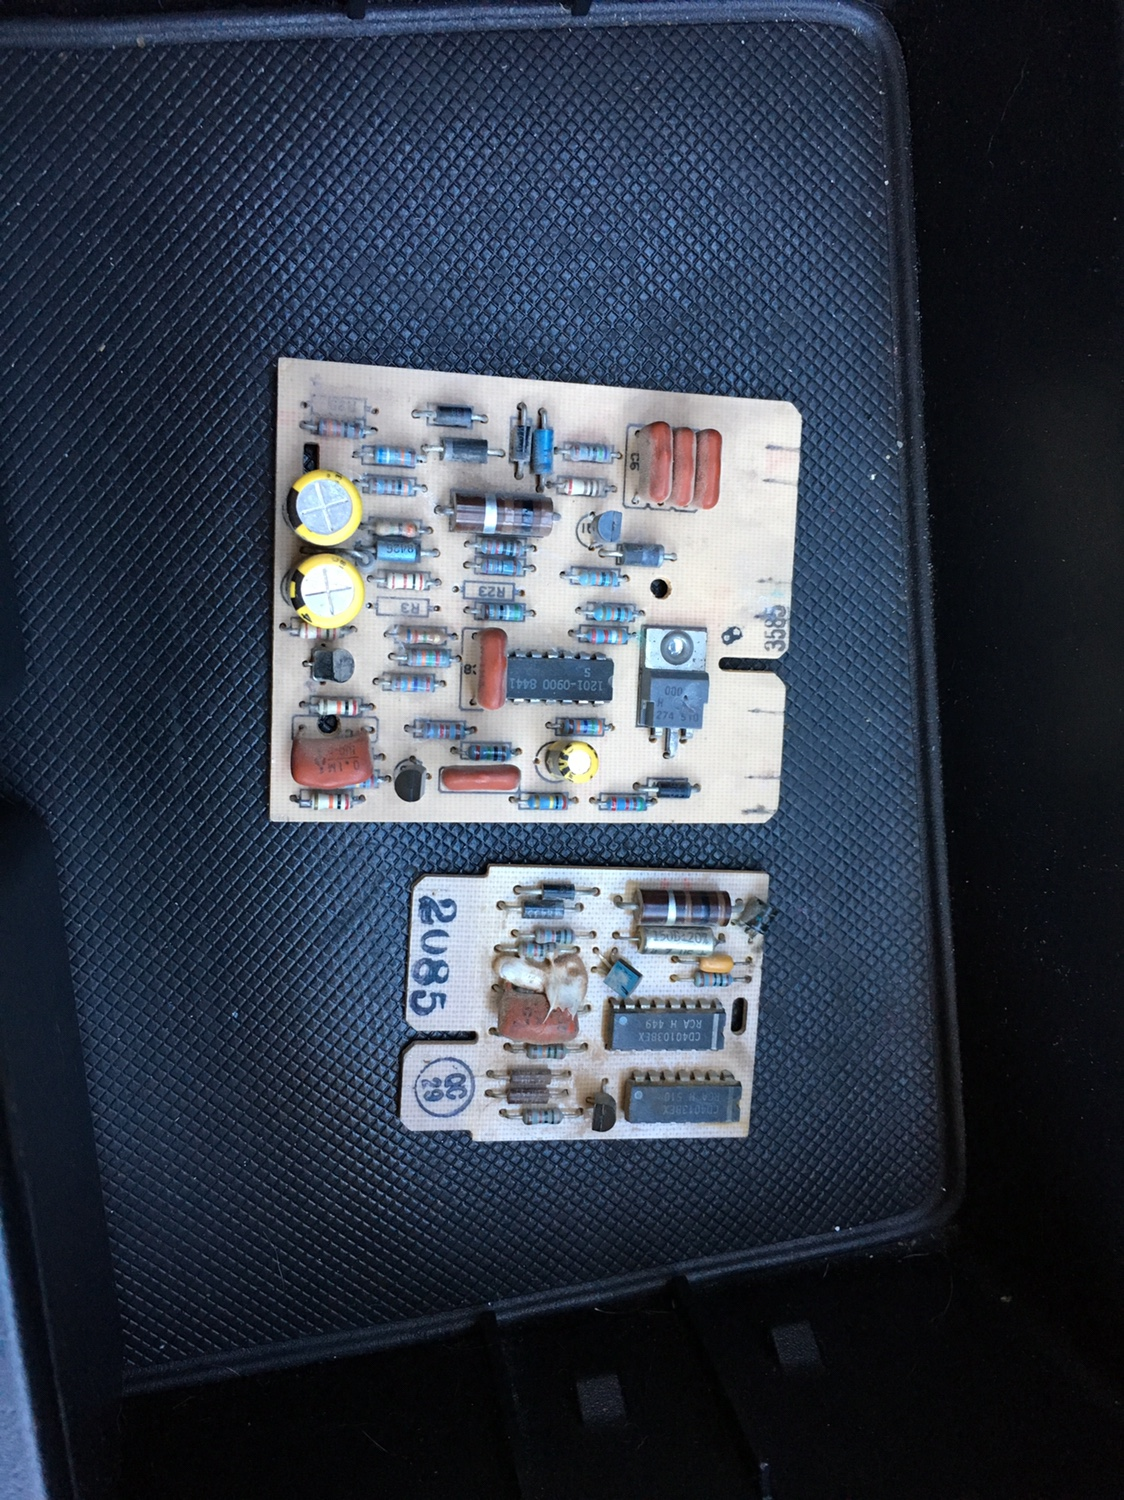 What Is This Card For M1009 Cucv Wiring Diagram I Know The Top Glow Plug Controller But Bottom One Its Located Near Diagnostic Under Middle Of Dash